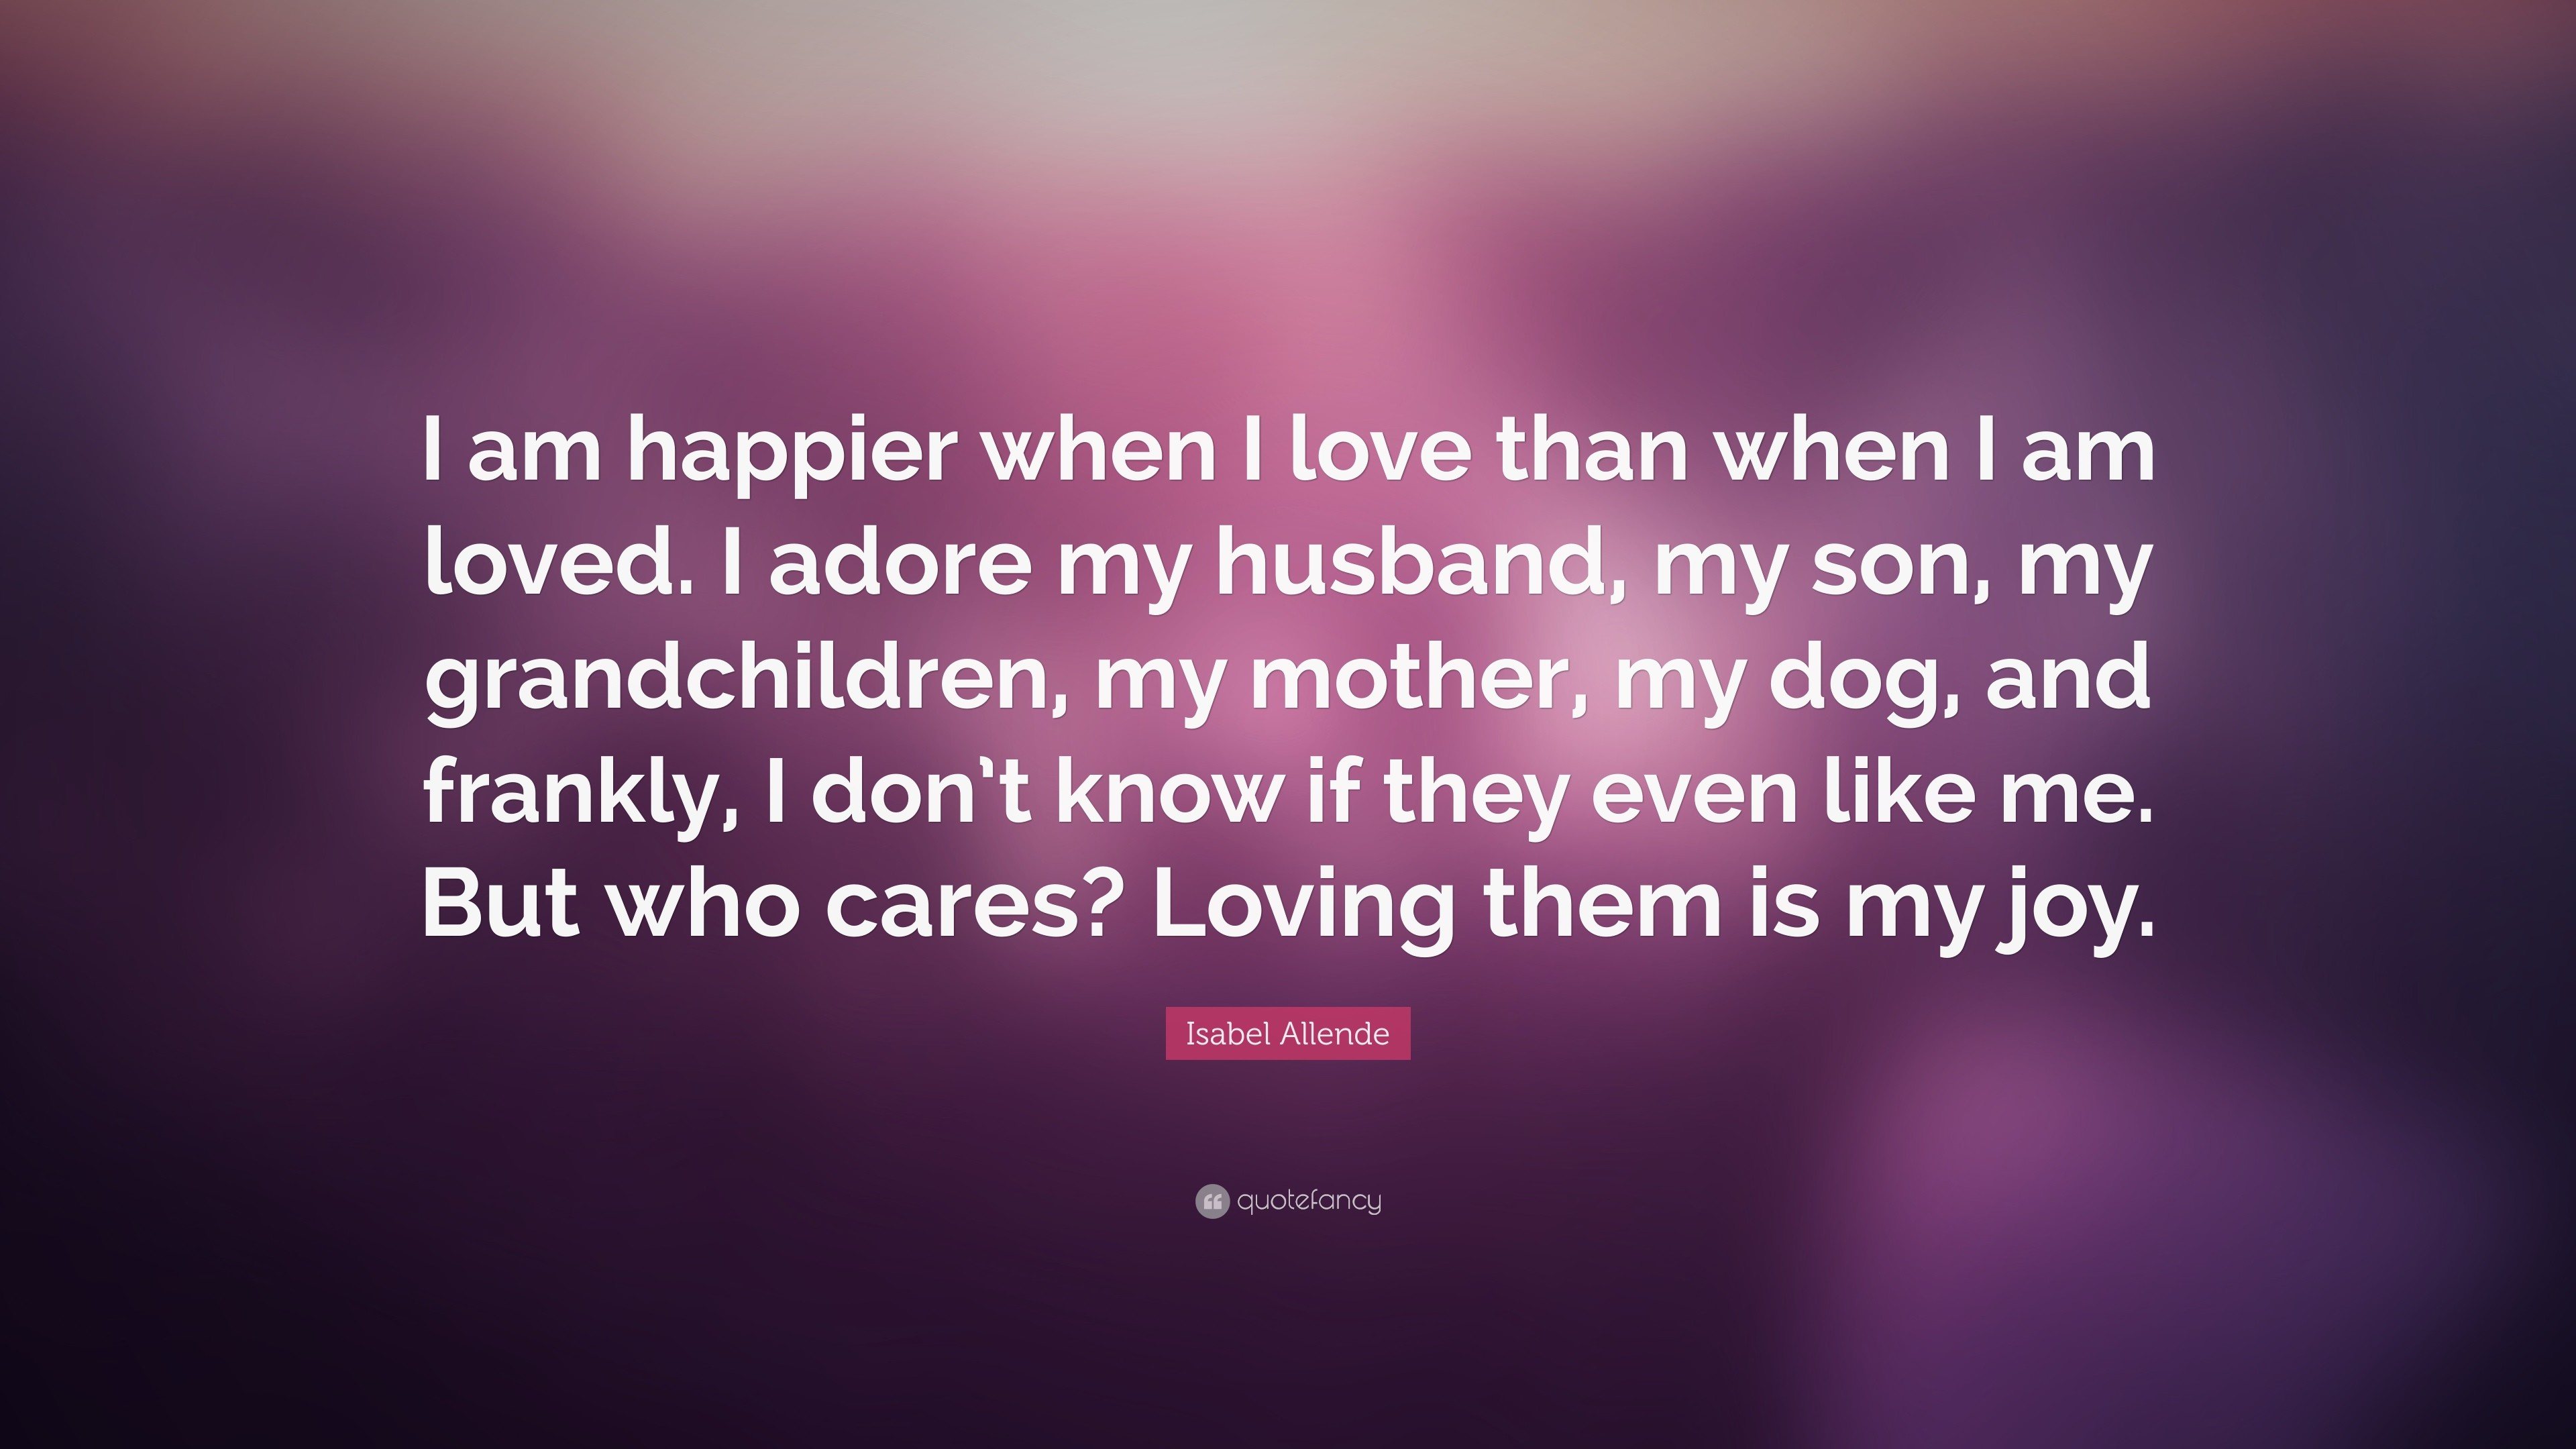 Love Quotes For My Son Happy Valentines Day To My Son Quotes ✓ Valentine's Gift Ideas